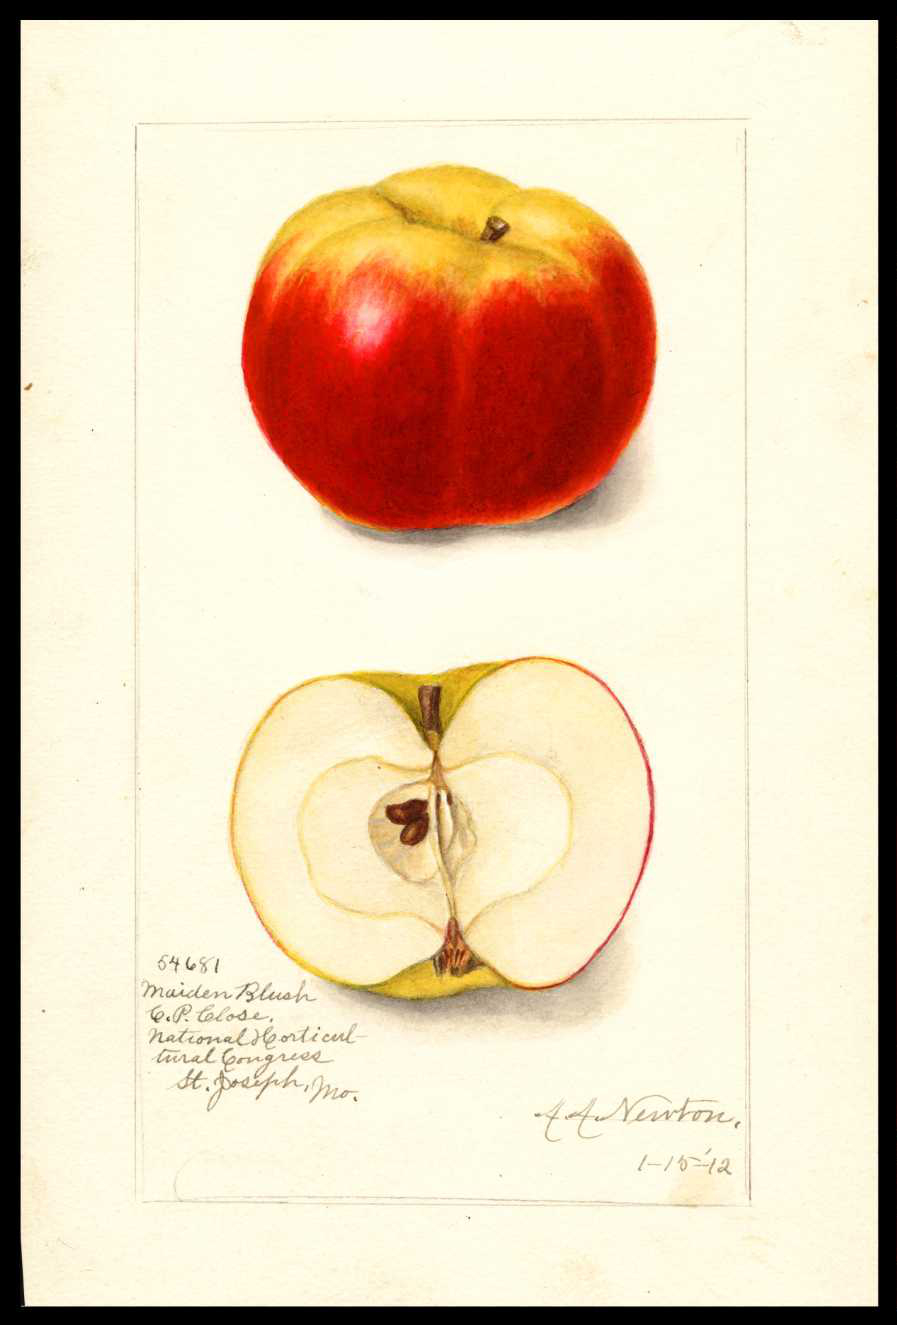 watercolor of a red apple that is yellow at the stem end